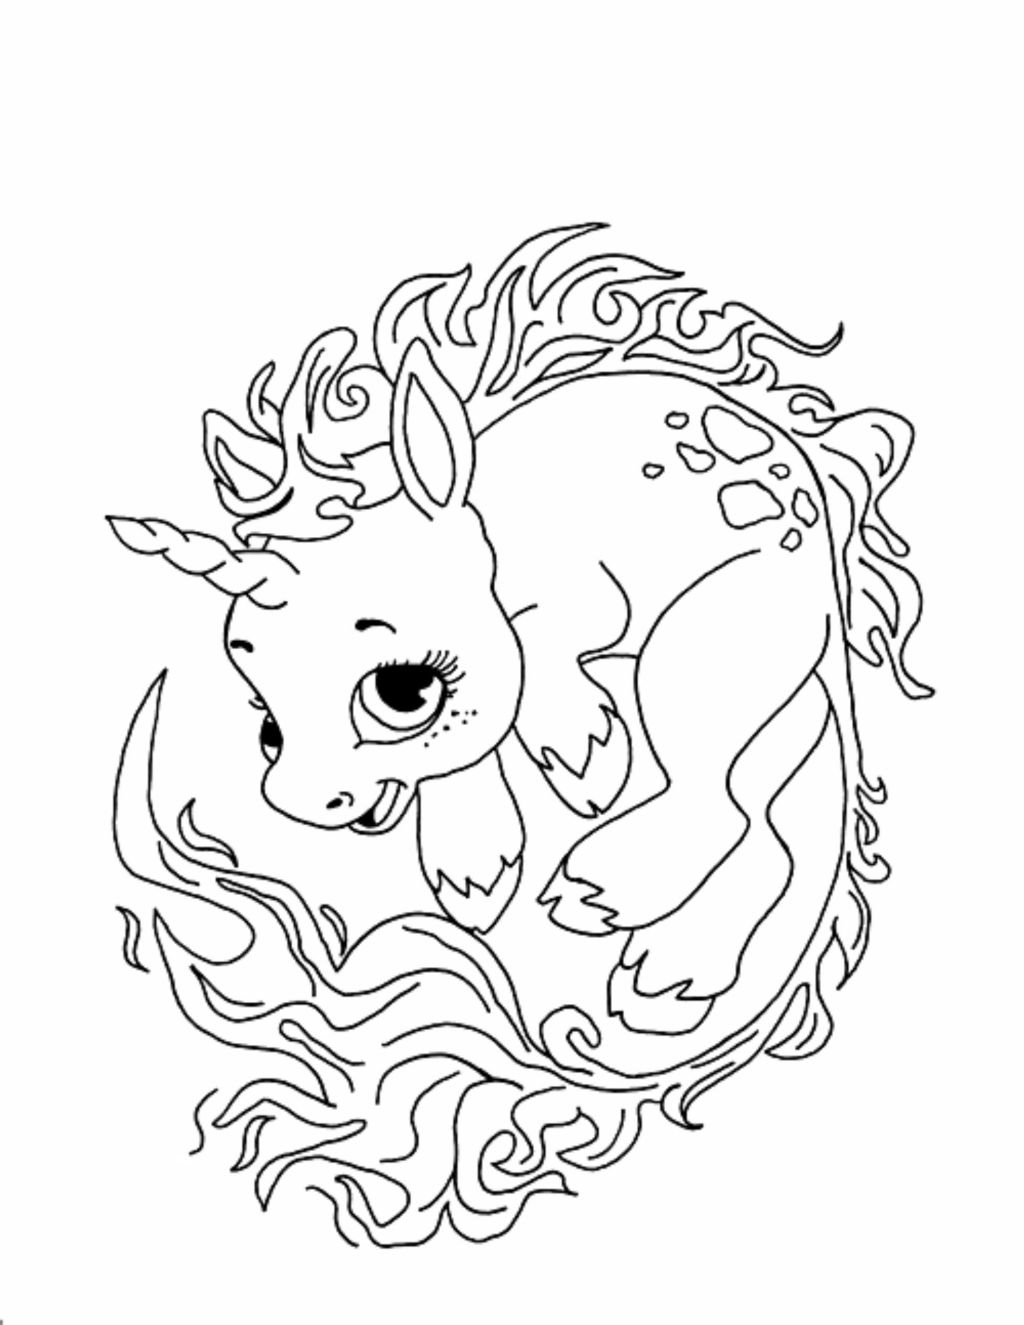 Cute Unicorn Coloring Pages Coloring Ideas Cute Unicorn Coloring Pages For Kids At Getdrawings